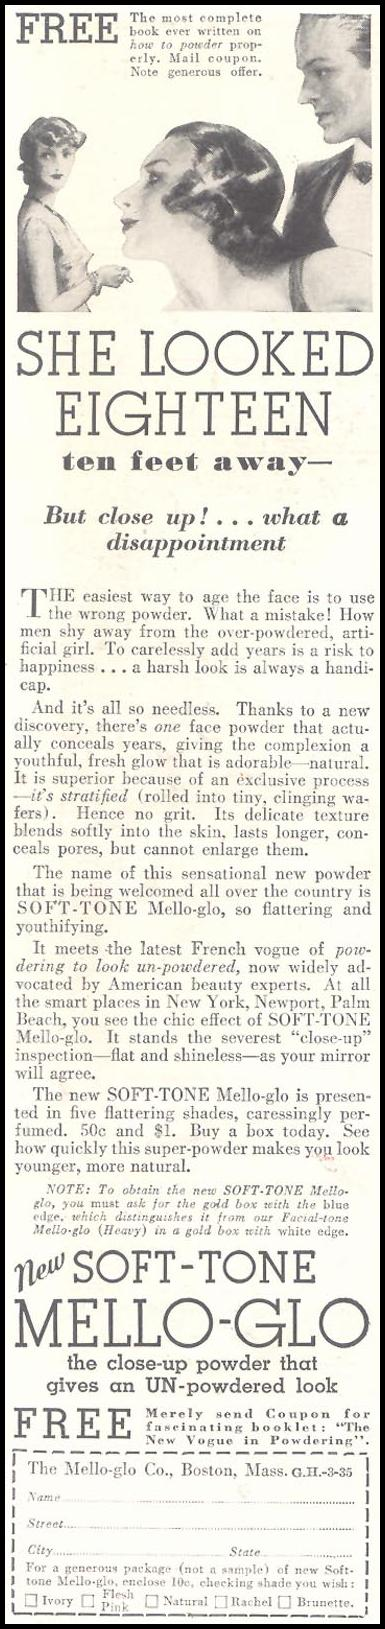 MELLO-GLO GOOD HOUSEKEEPING 03/01/1935 p. 188